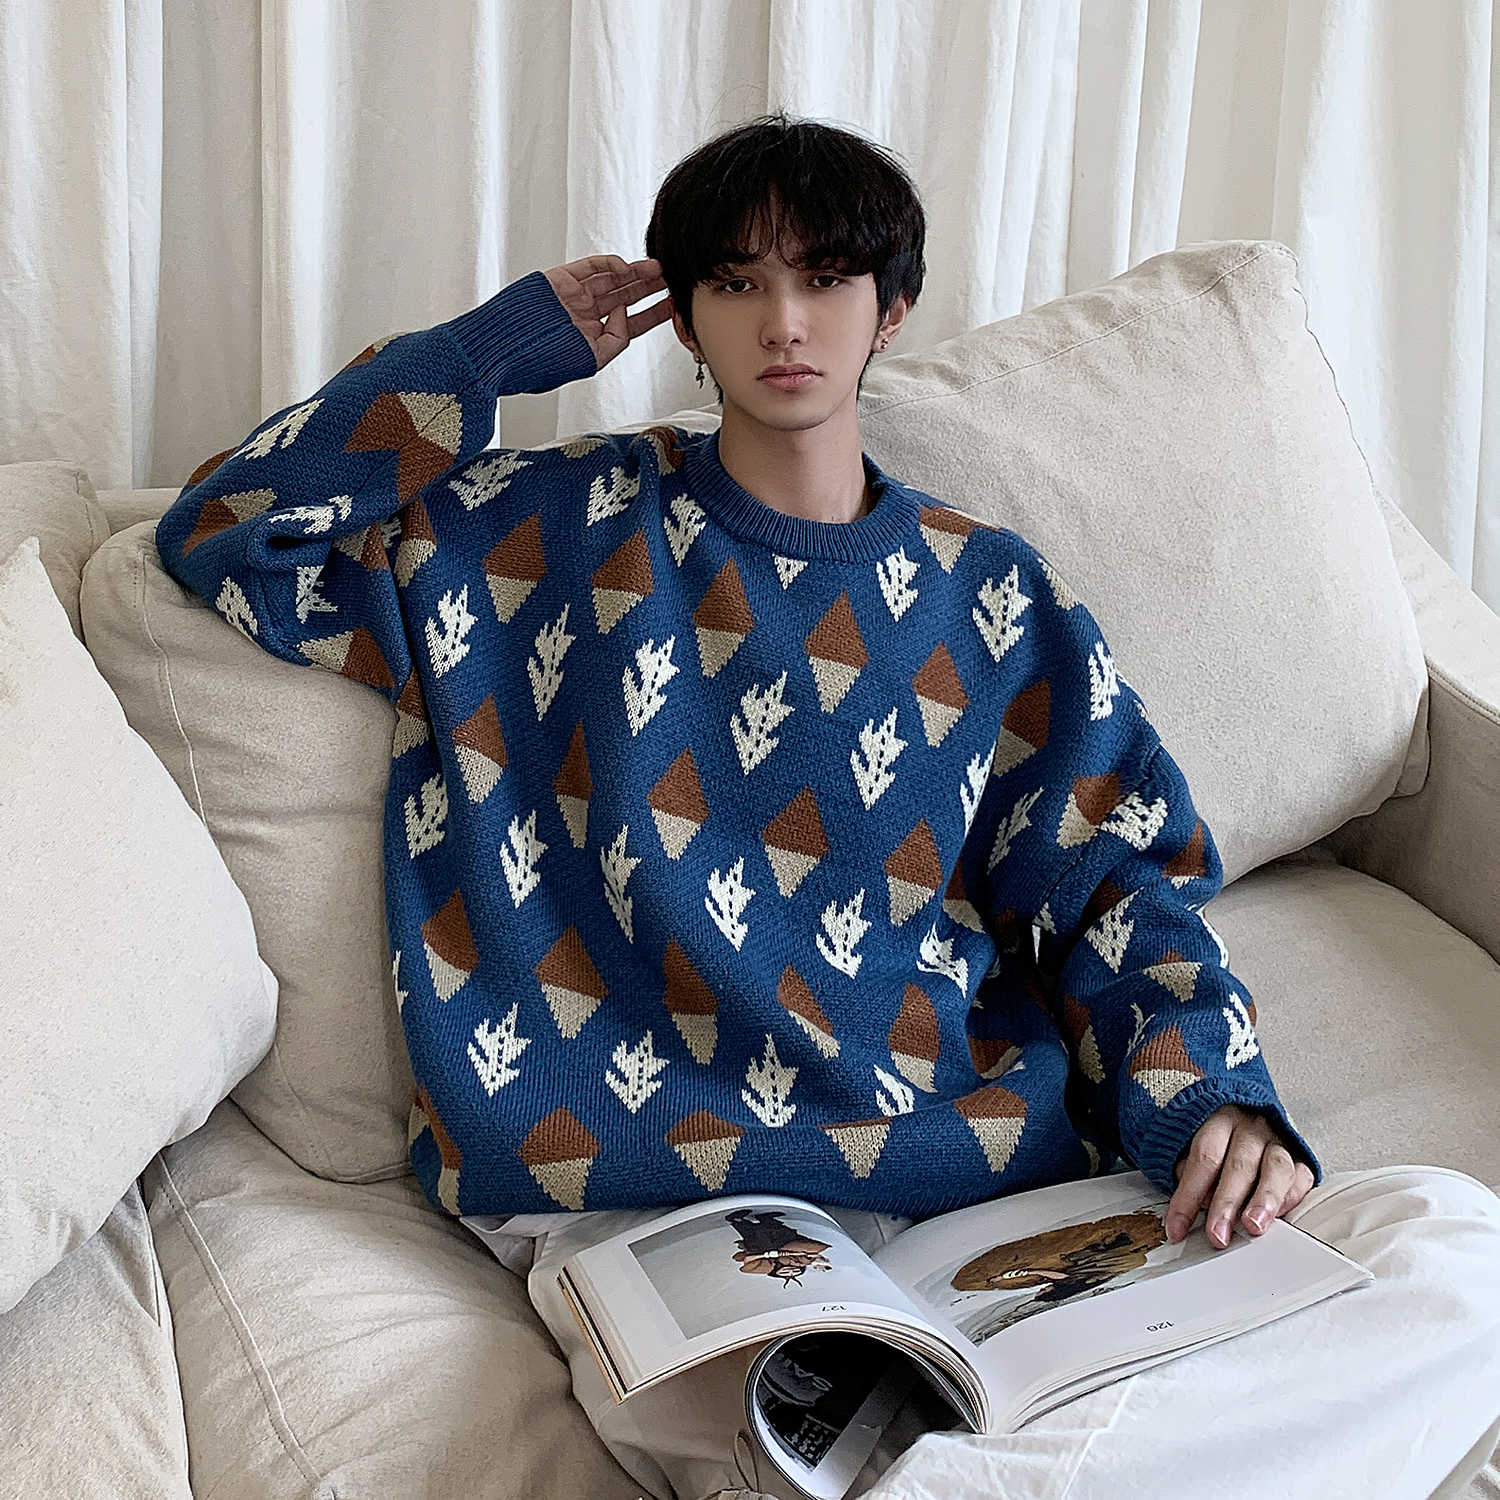 Winter Men's Round Neck Printing Woollen Sweater Loose Casual Cashmere Knitting Apricot/blue Color Pullover Clothes Coats M-XL